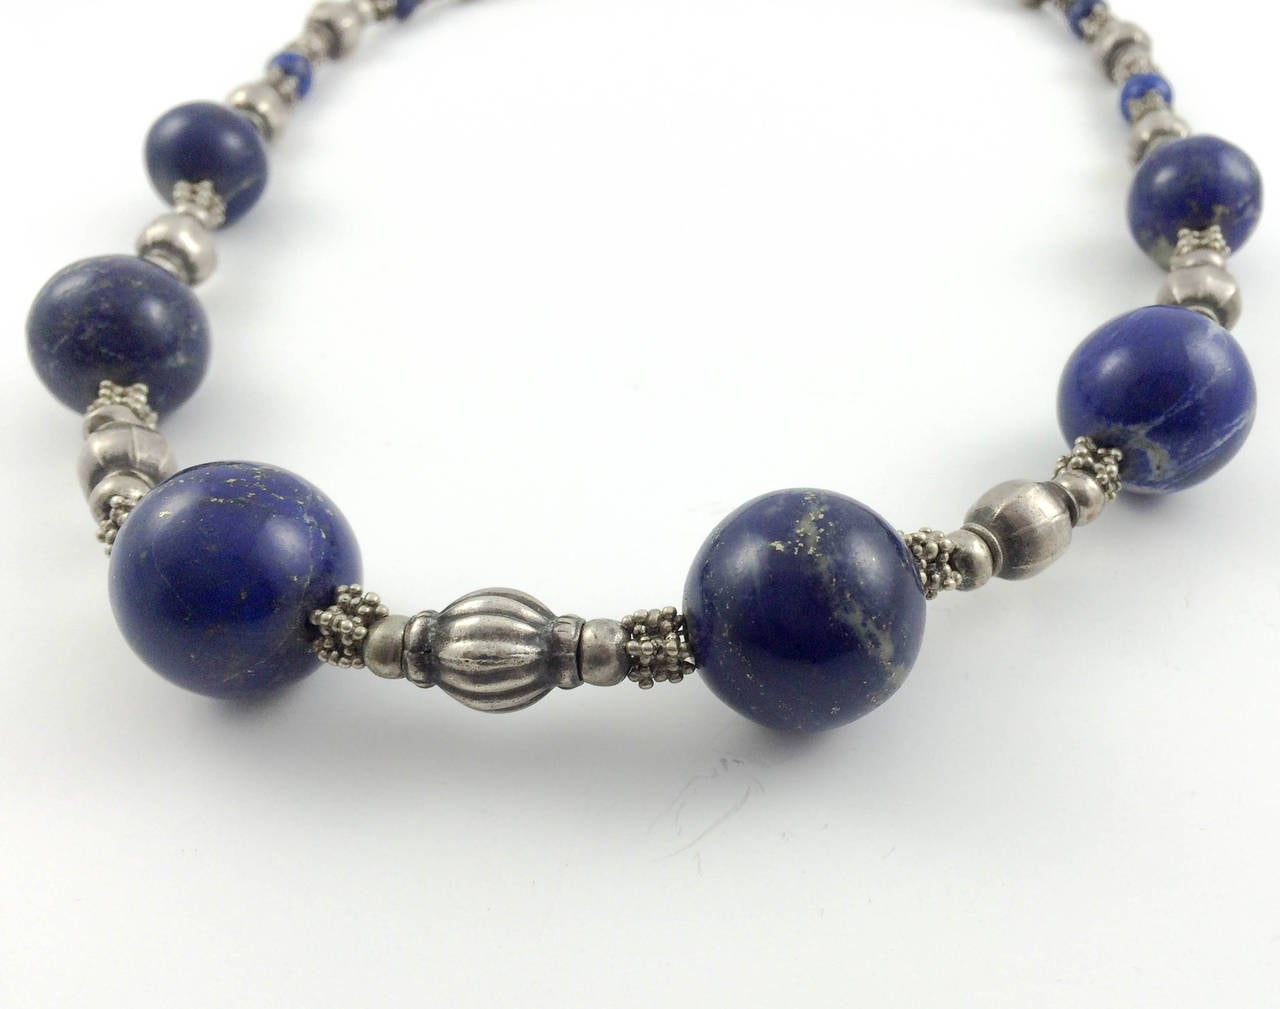 Silver and Lapis Lazuli Necklace - 1970s For Sale 1